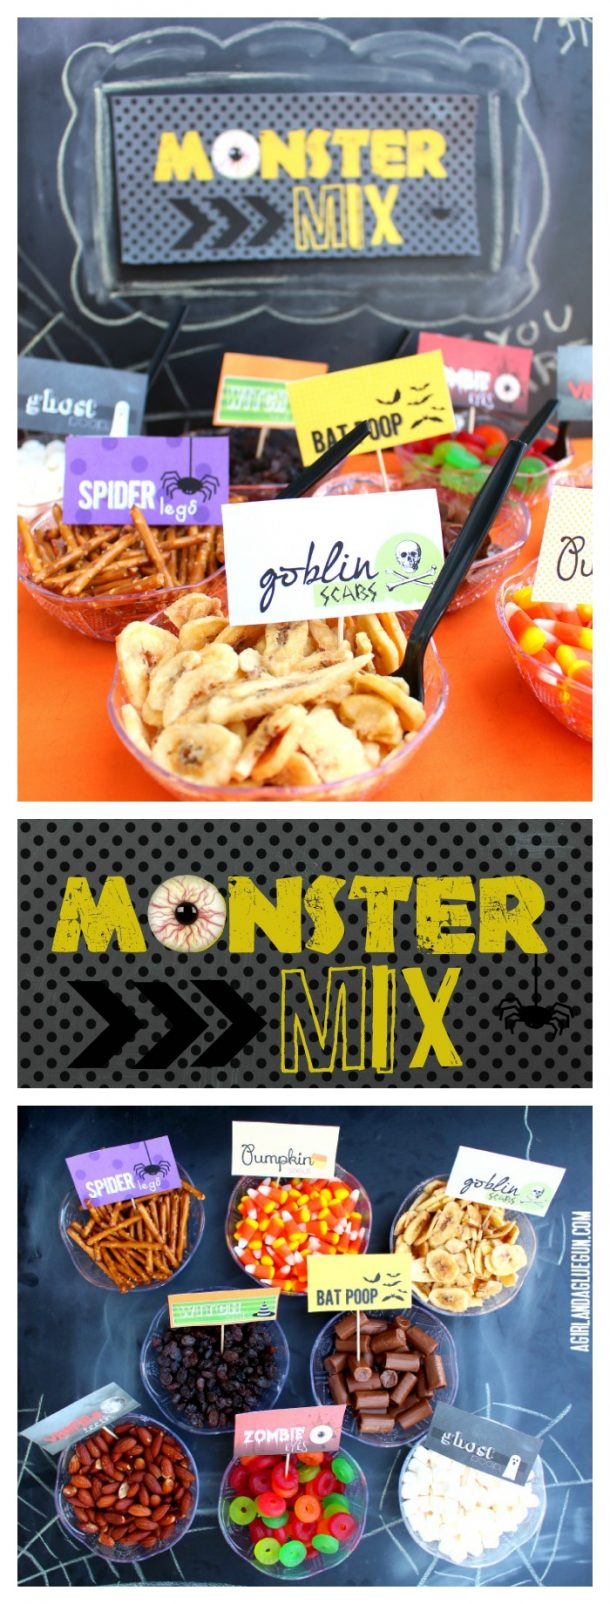 Non-Candy Halloween Snacks and Treats Ideas and Recipes - Monster Trail Mix Bar with healhier snack options and free printables via A Girl and a Glue Gun